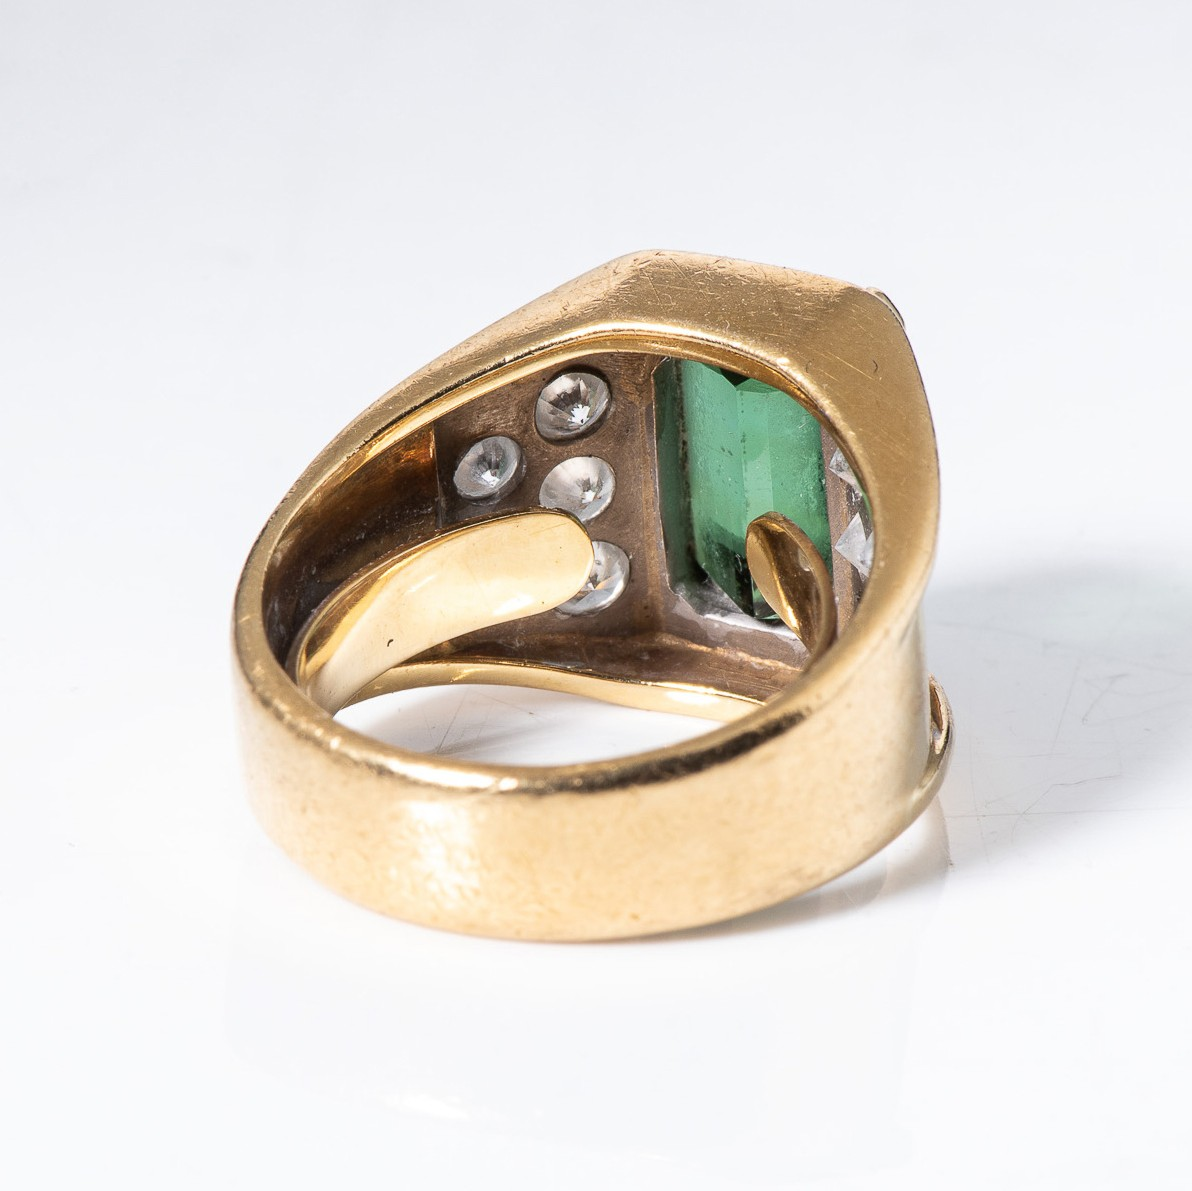 A GREEN TOURMALINE AND DIAMOND RING - Image 4 of 4